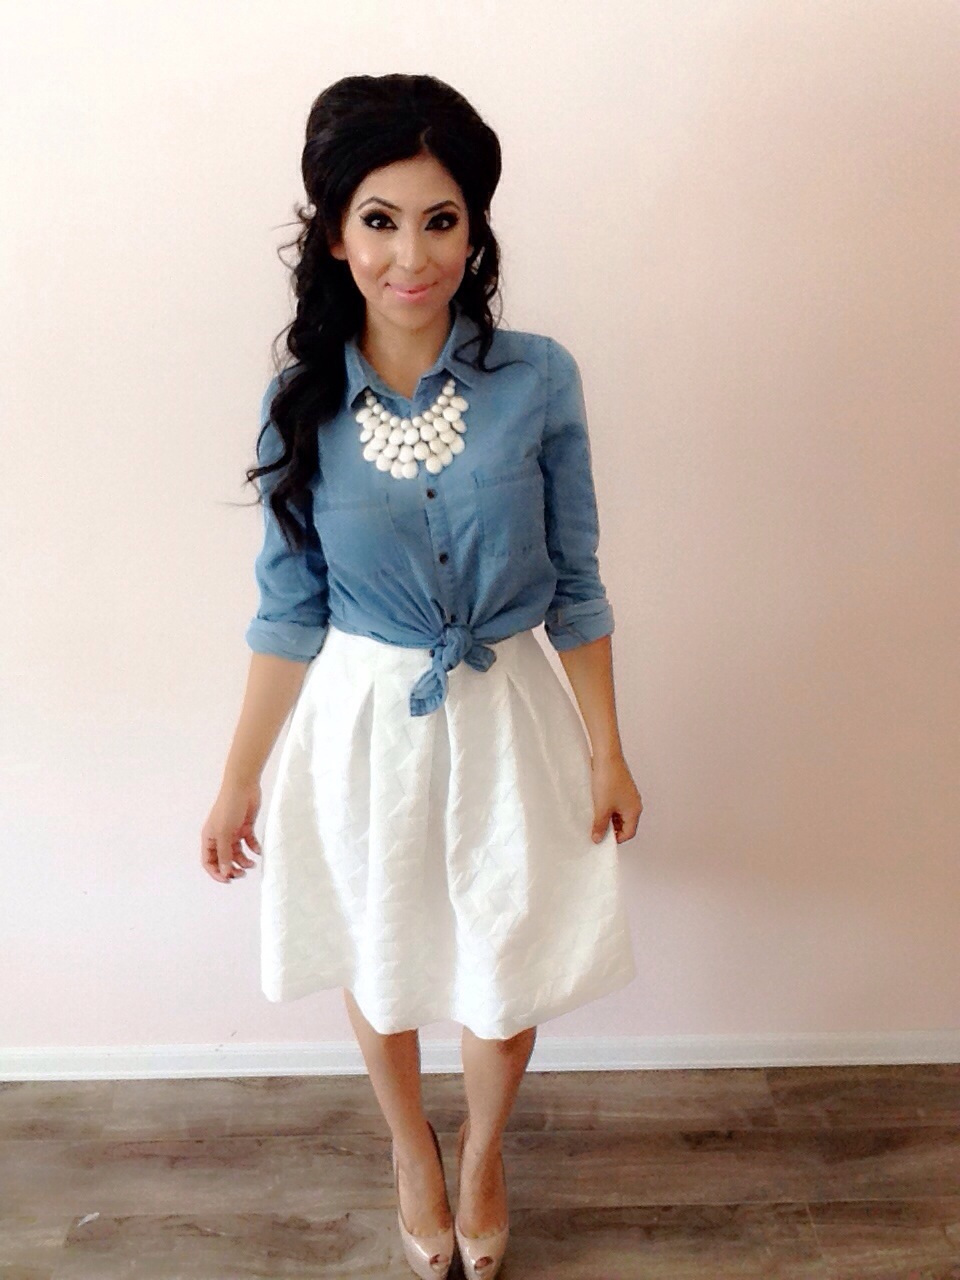 How To: Styling a White Skirt! Modest Summer Outfits! Featuring ...